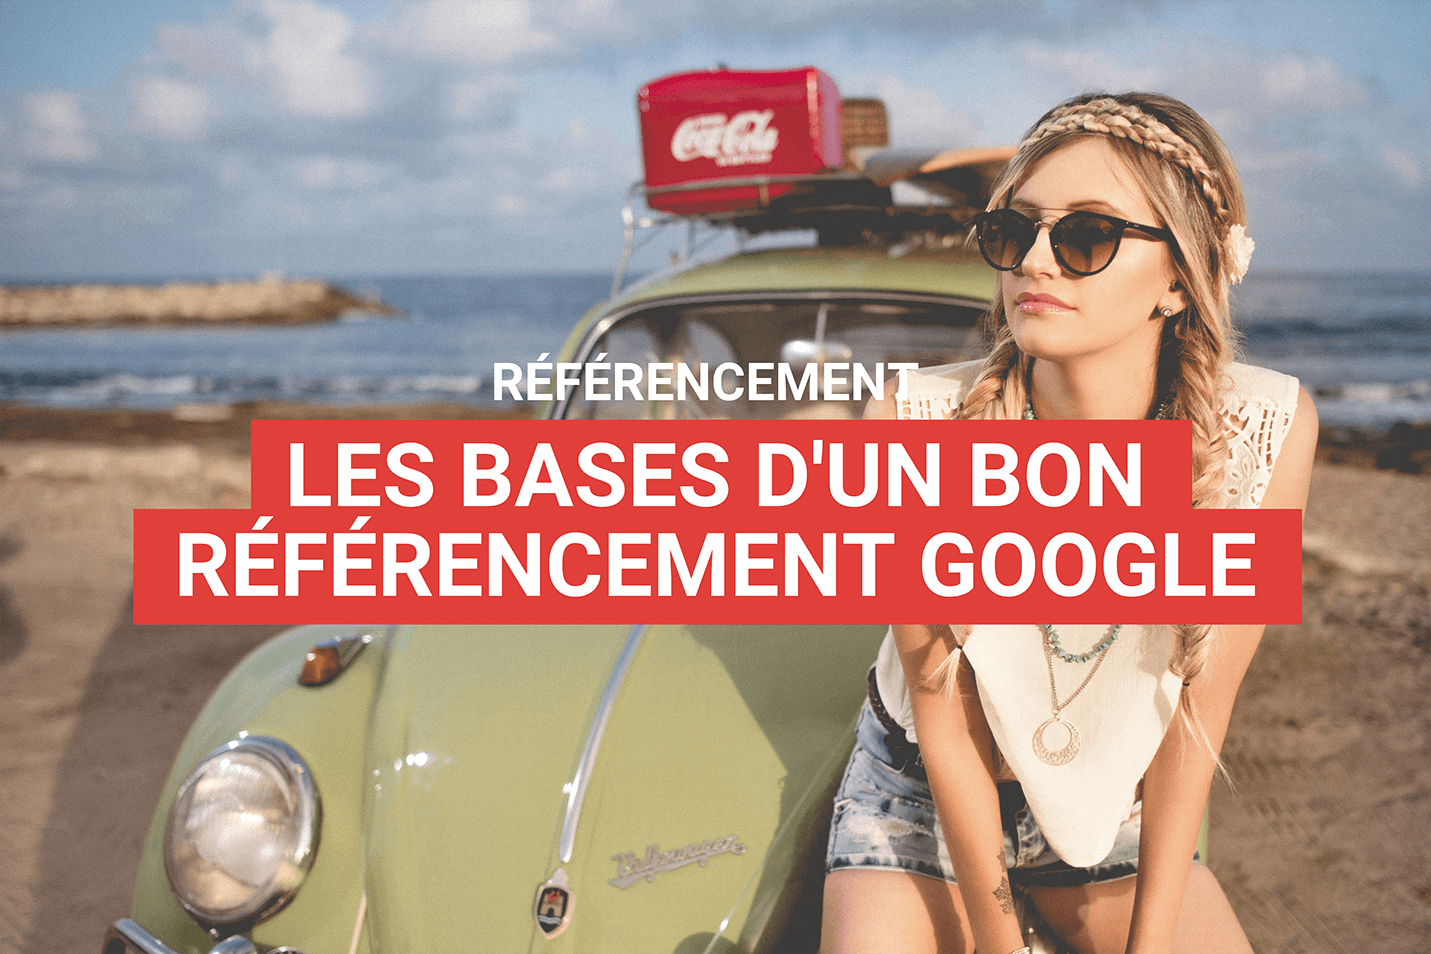 The basics of a good Google referencing